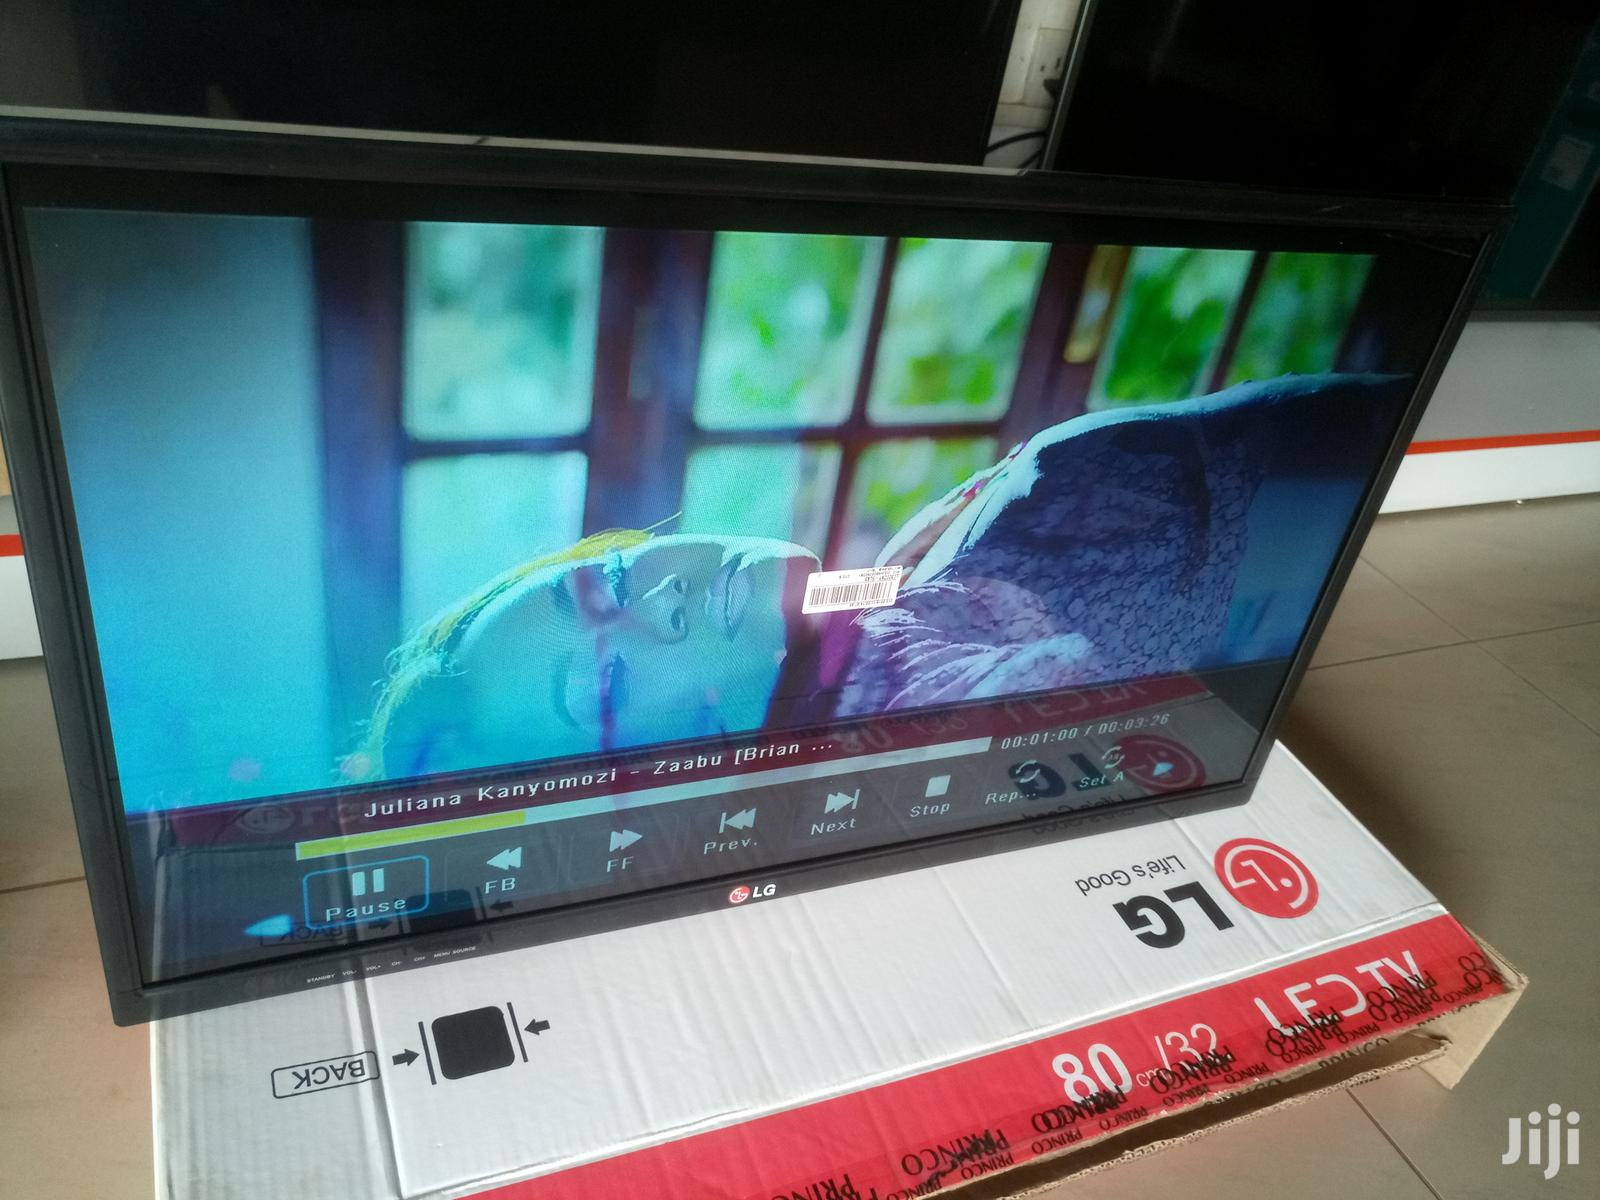 LG Led Flat Screen Digital Tv 32 Inches | TV & DVD Equipment for sale in Kampala, Central Region, Uganda